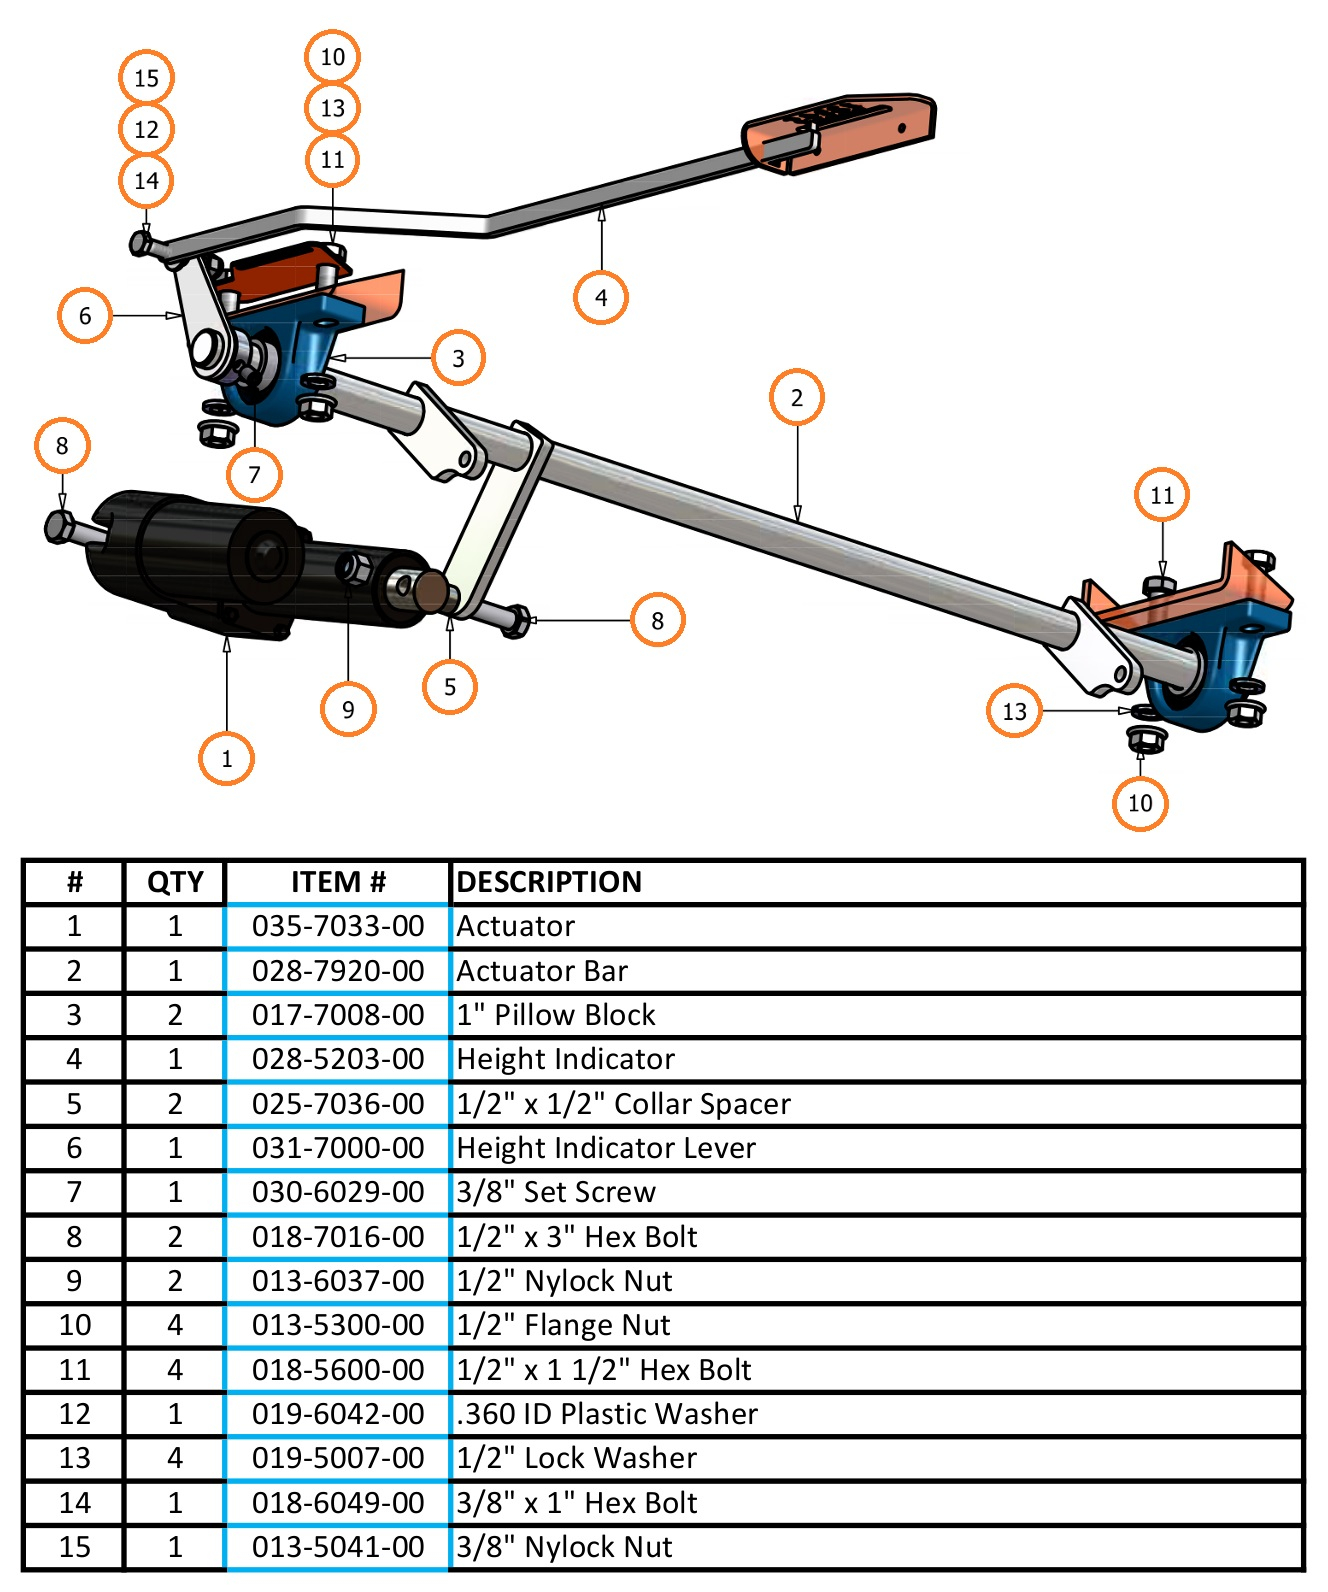 2007 Aos Actuator Bar Parts And Schematics